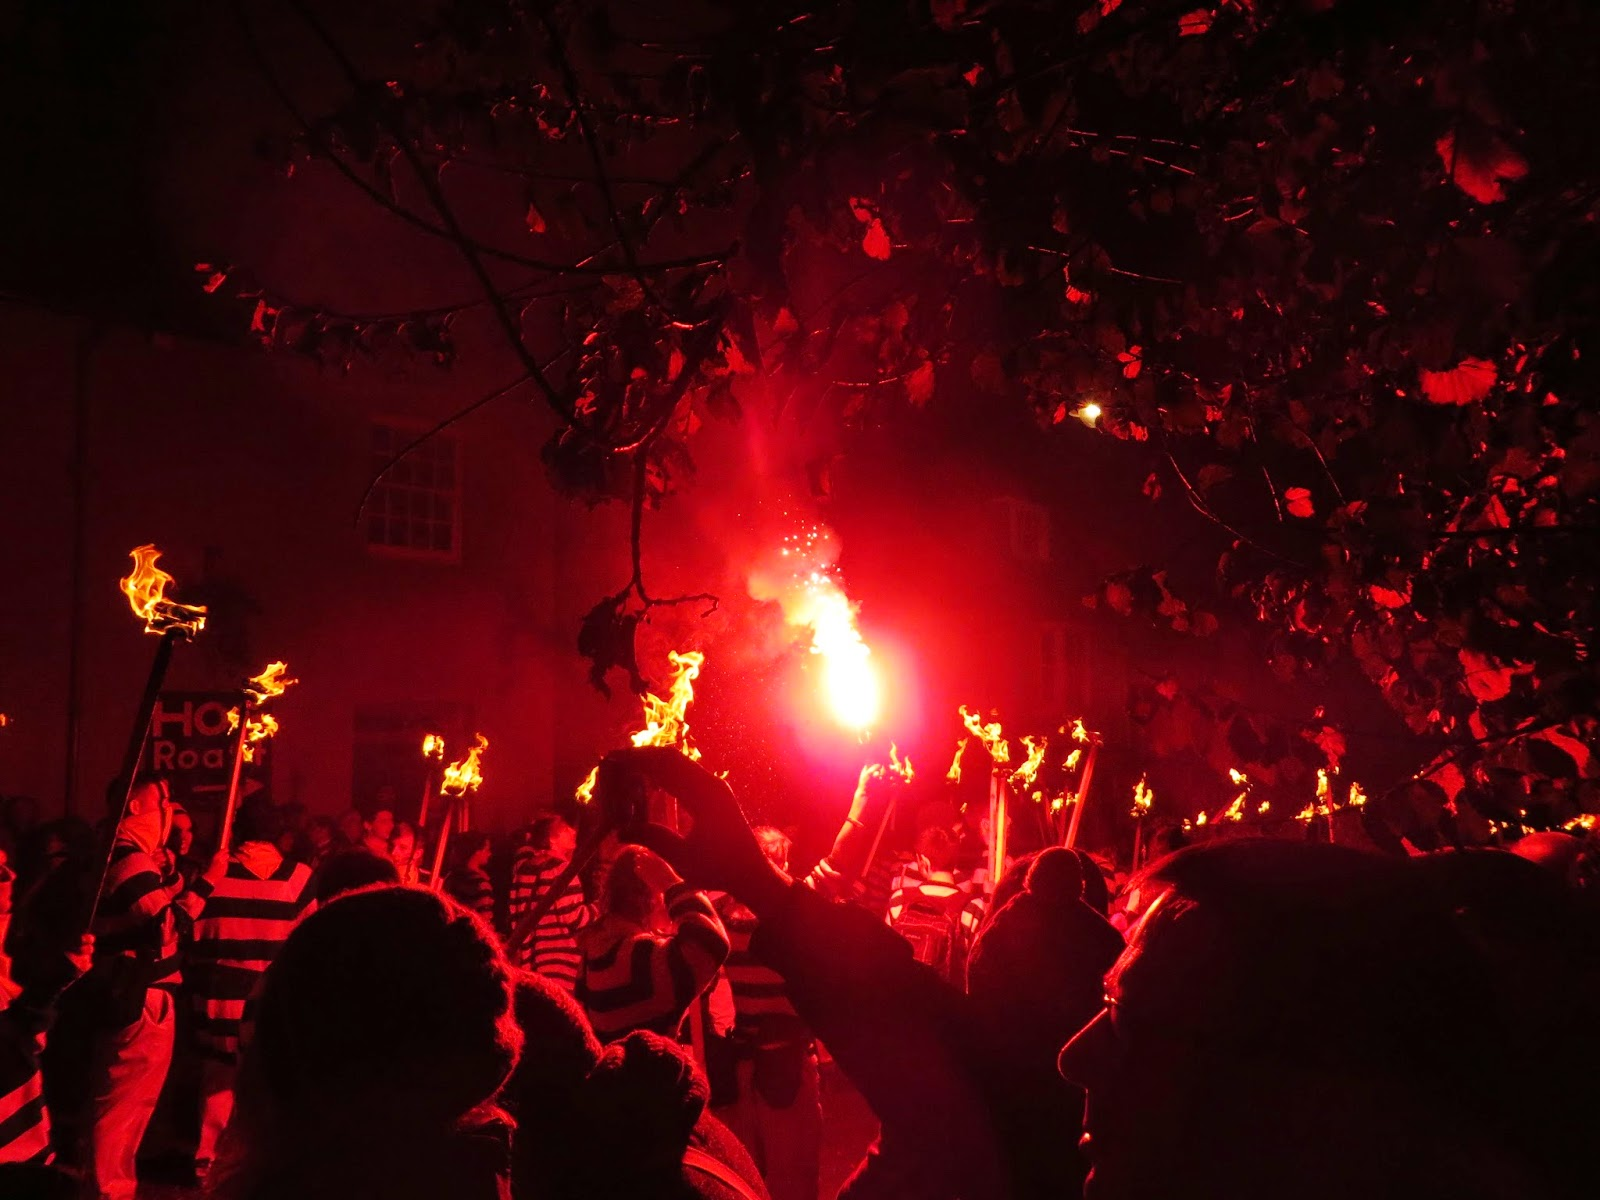 Lewes bonfire night, lewes bonfire procession, the fifth, 5th november, Guy Fawkes night, fire, torches, Lewes, Sussex, flaming torch, must do,